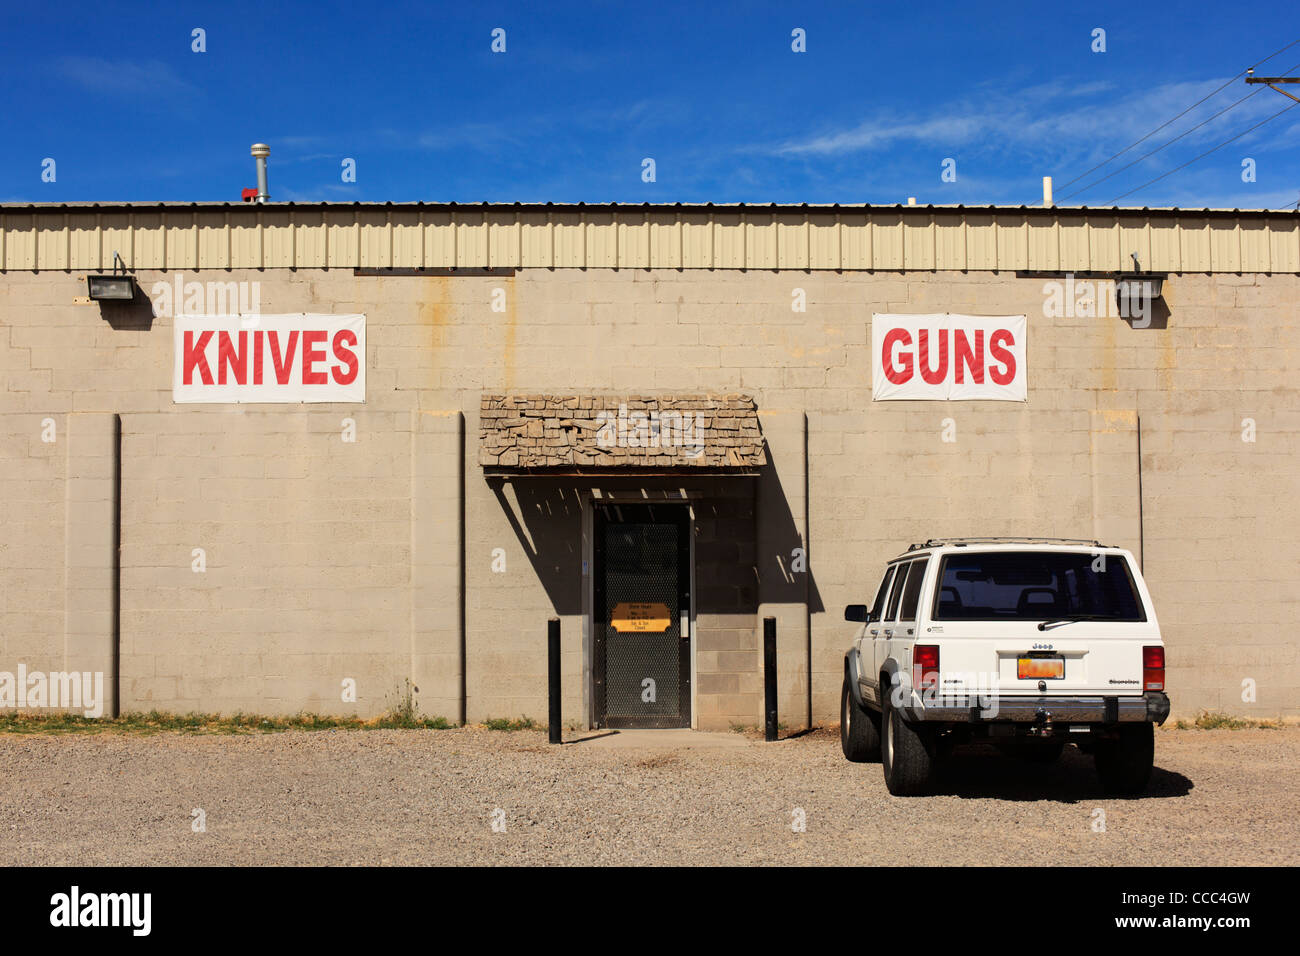 Shop selling knives and guns, New Mexico, USA (vehicle license obscured). Stock Foto